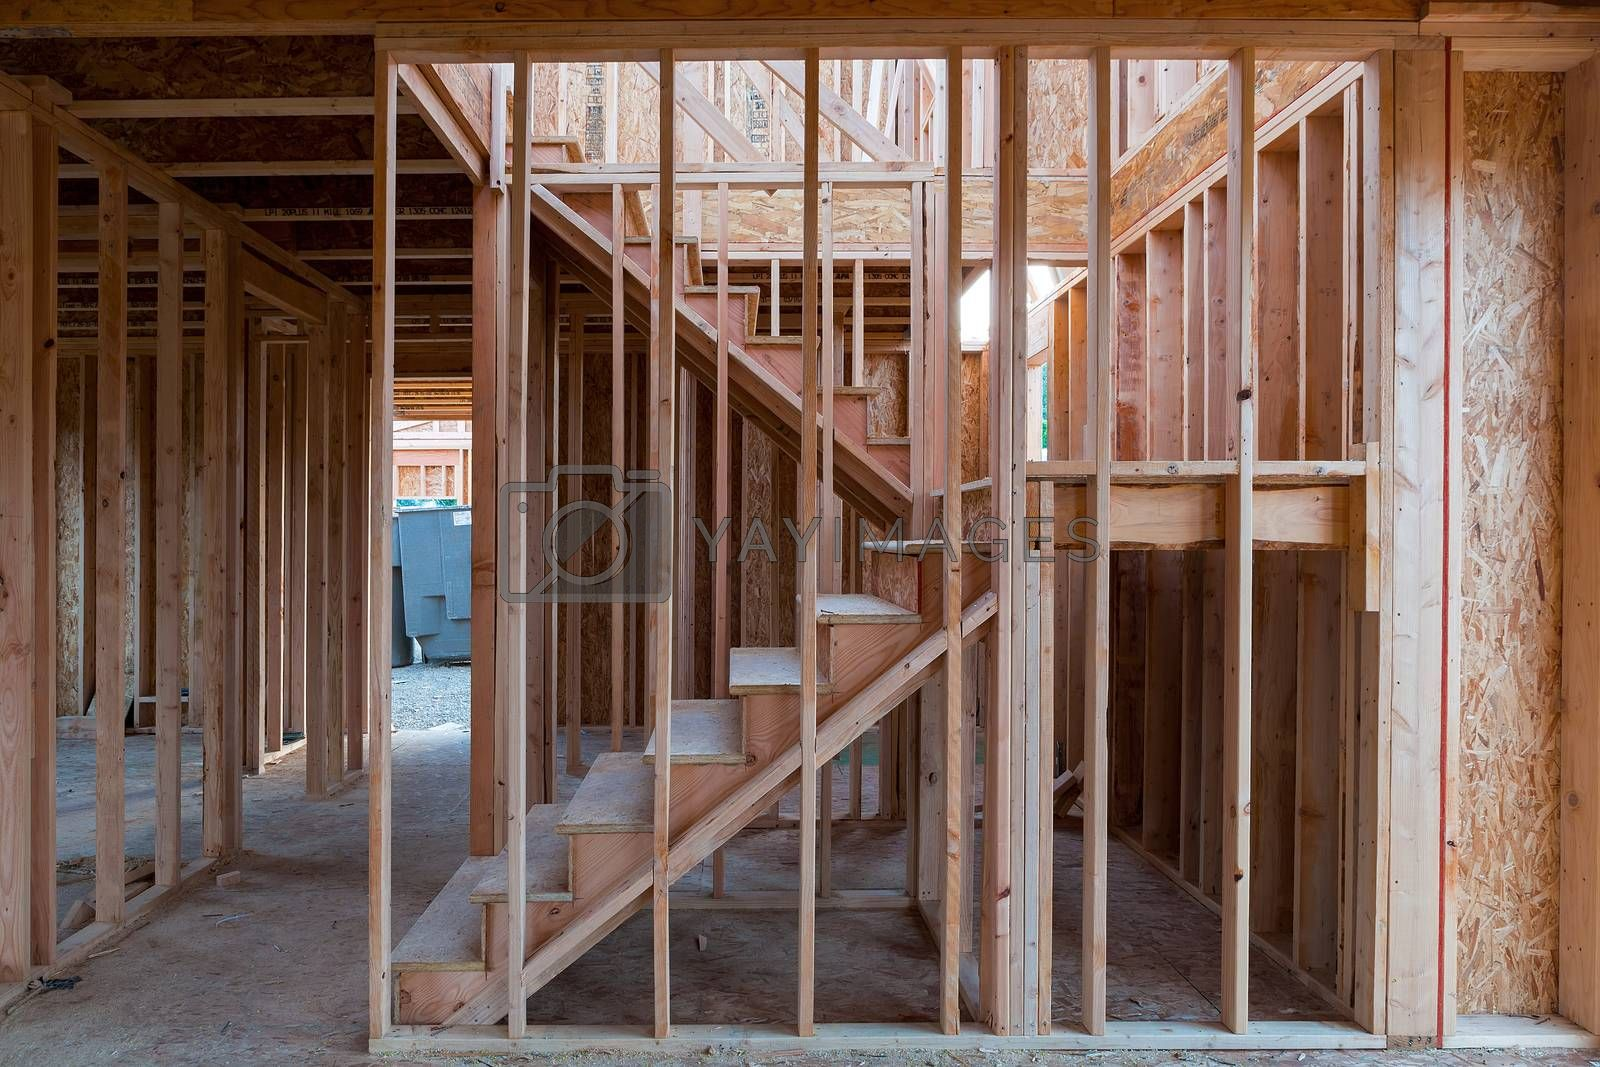 New home construction interior wood stud framing ceiling beams entryway staircase